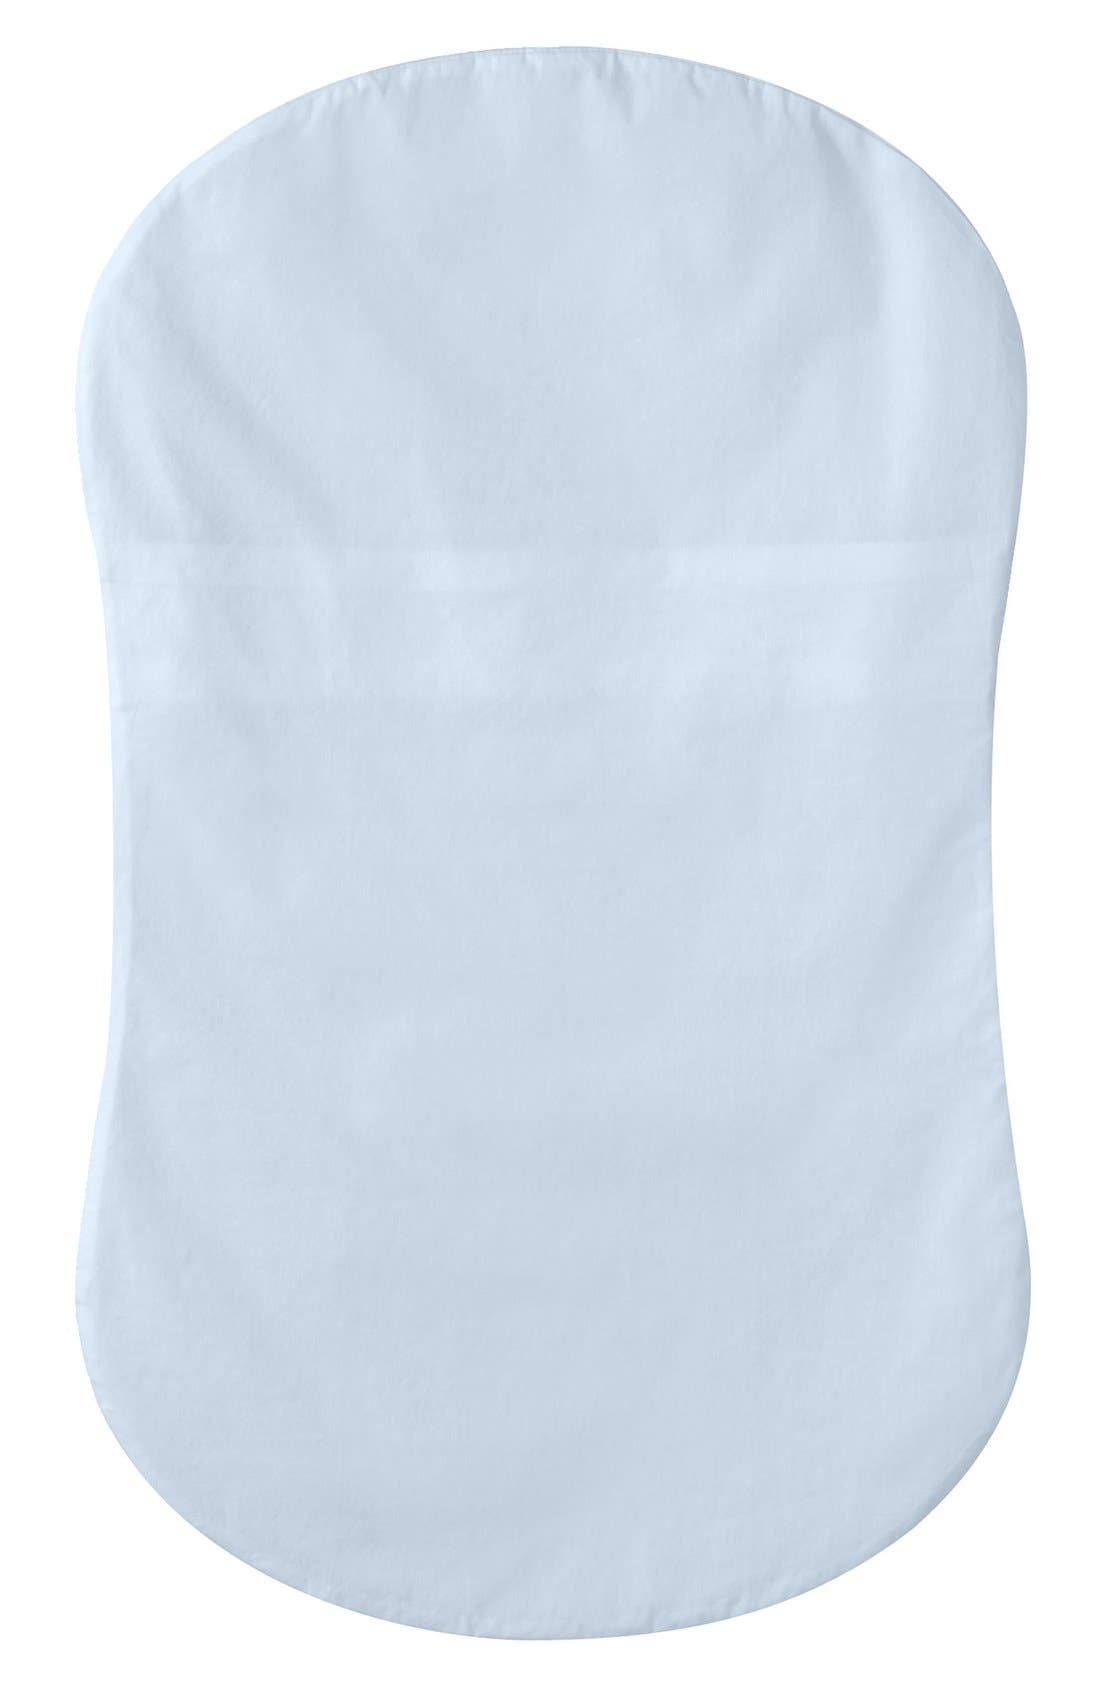 HALO<sup>®</sup> Innovations Cotton Fitted Sheet for HALO<sup>®</sup> Innovations Bassinest<sup>™</sup> Swivel Sleeper,                         Main,                         color, Blue